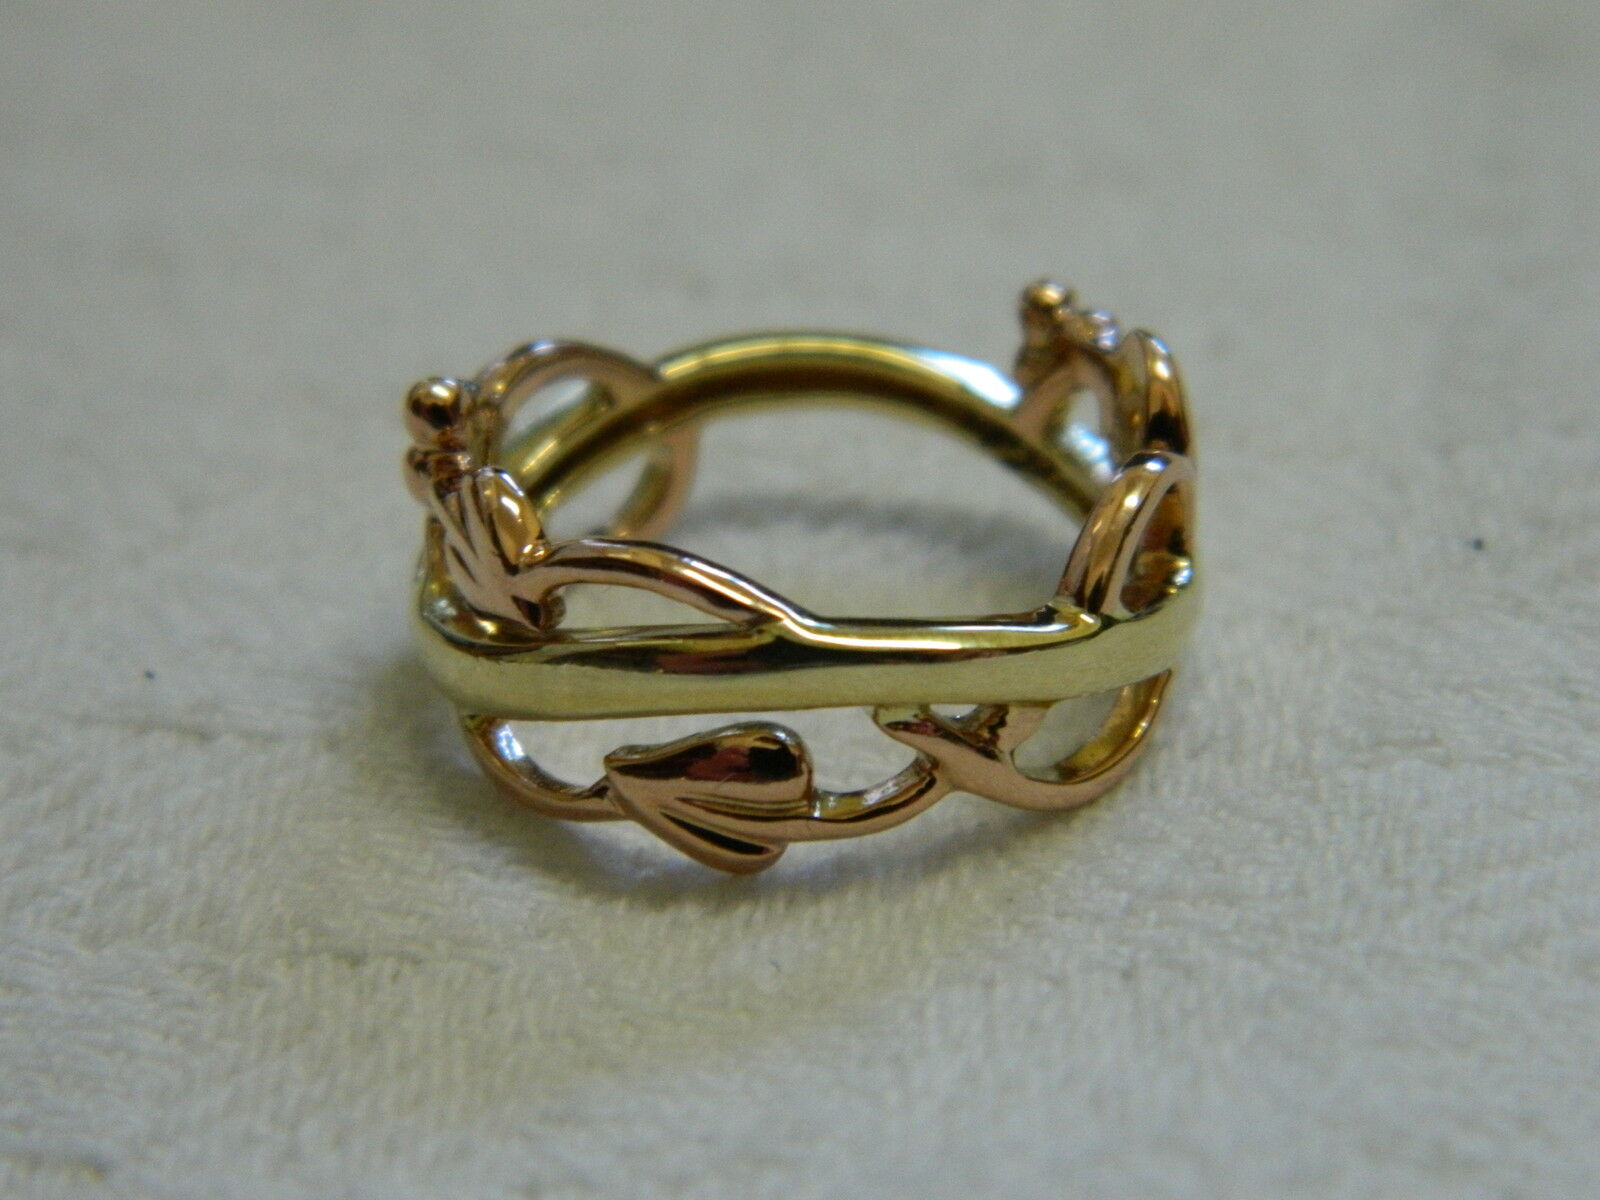 Clogau 9ct Yellow Amp Rose Welsh Gold Am Byth Ring RRP GBP64000 Size N